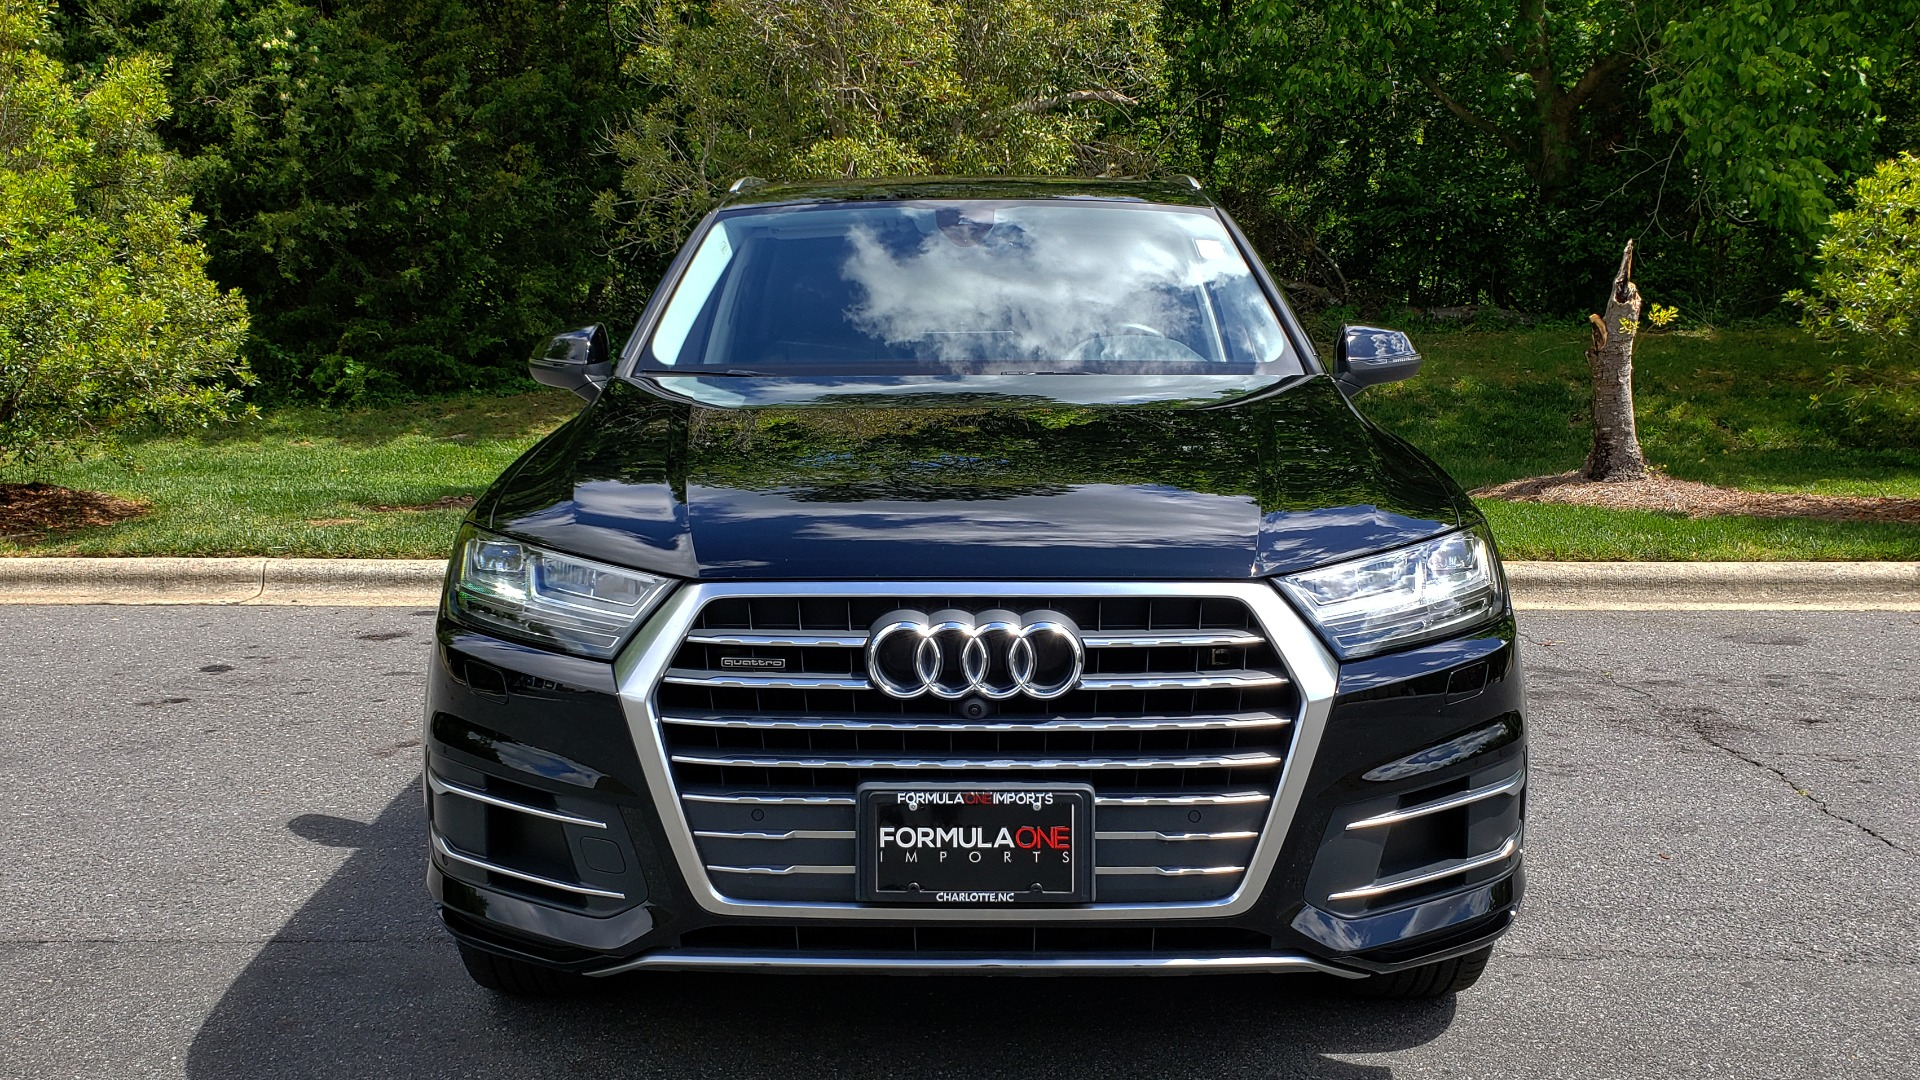 Used 2017 Audi Q7 PREMIUM PLUS / VISION PKG / NAV / PANO-ROOF / 3-ROW / REARVIEW for sale Sold at Formula Imports in Charlotte NC 28227 20